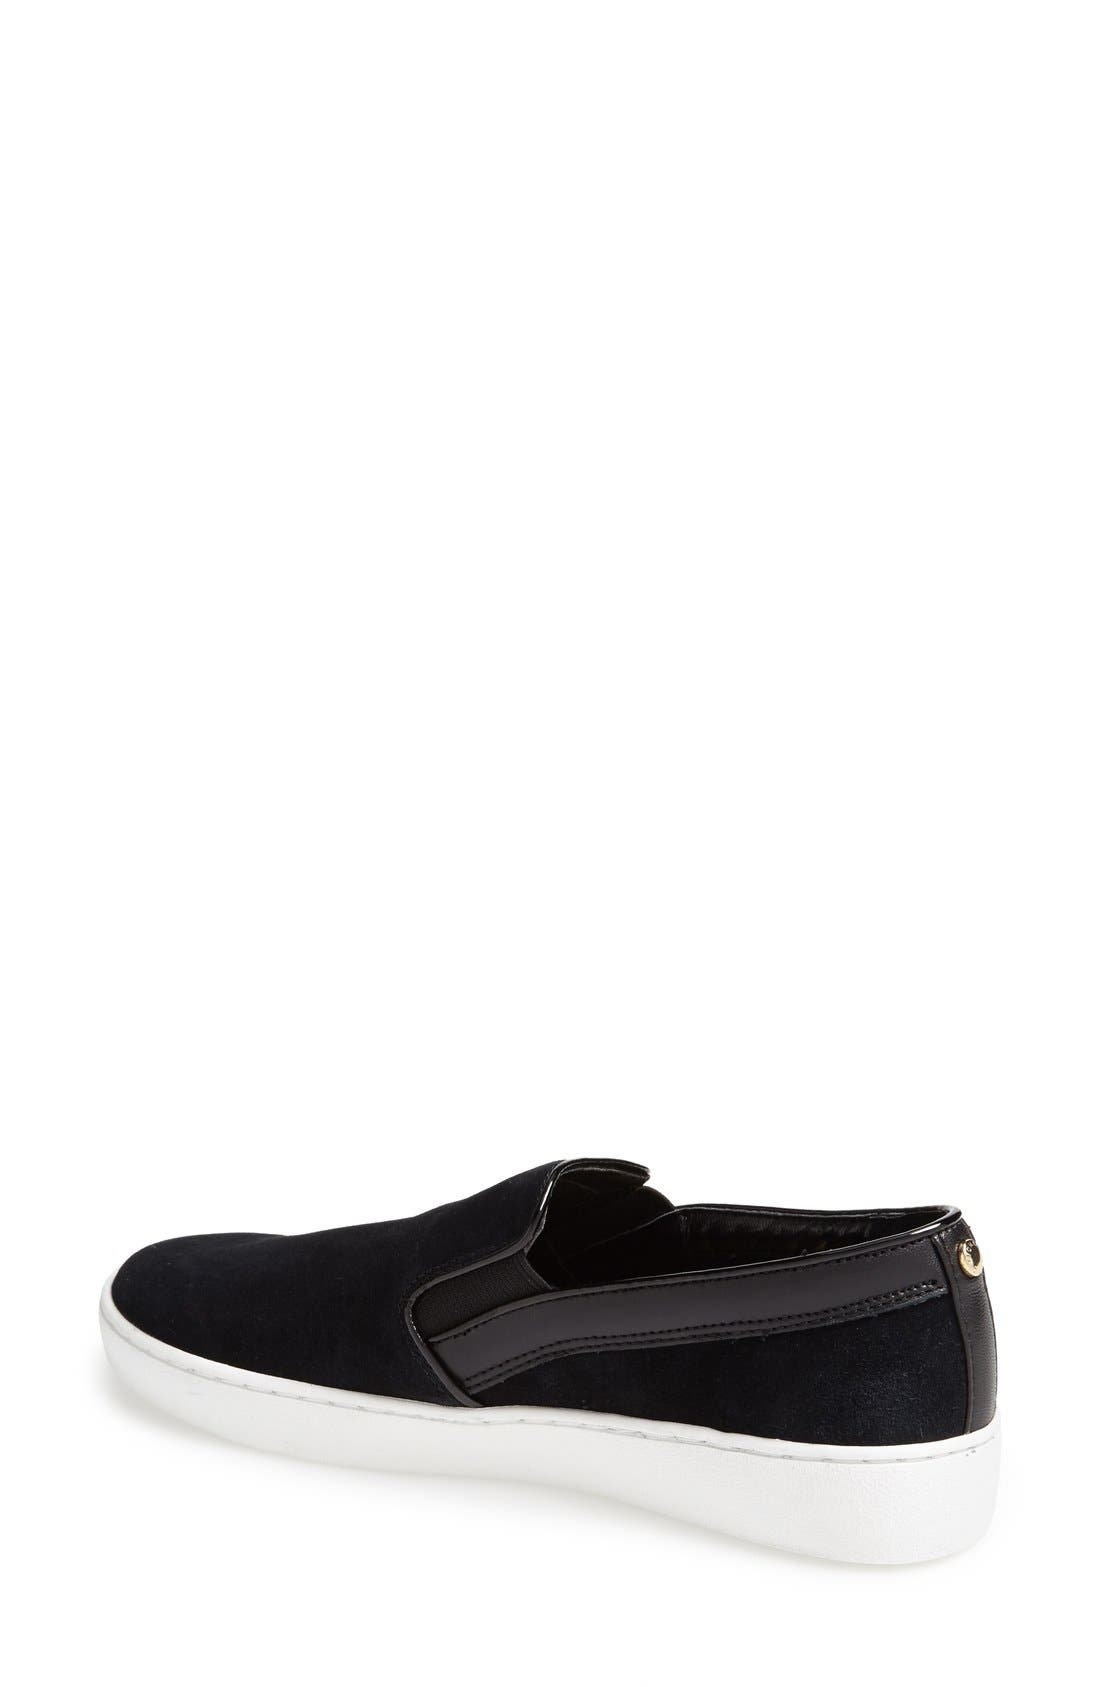 Keaton Slip-On Sneaker,                             Alternate thumbnail 58, color,